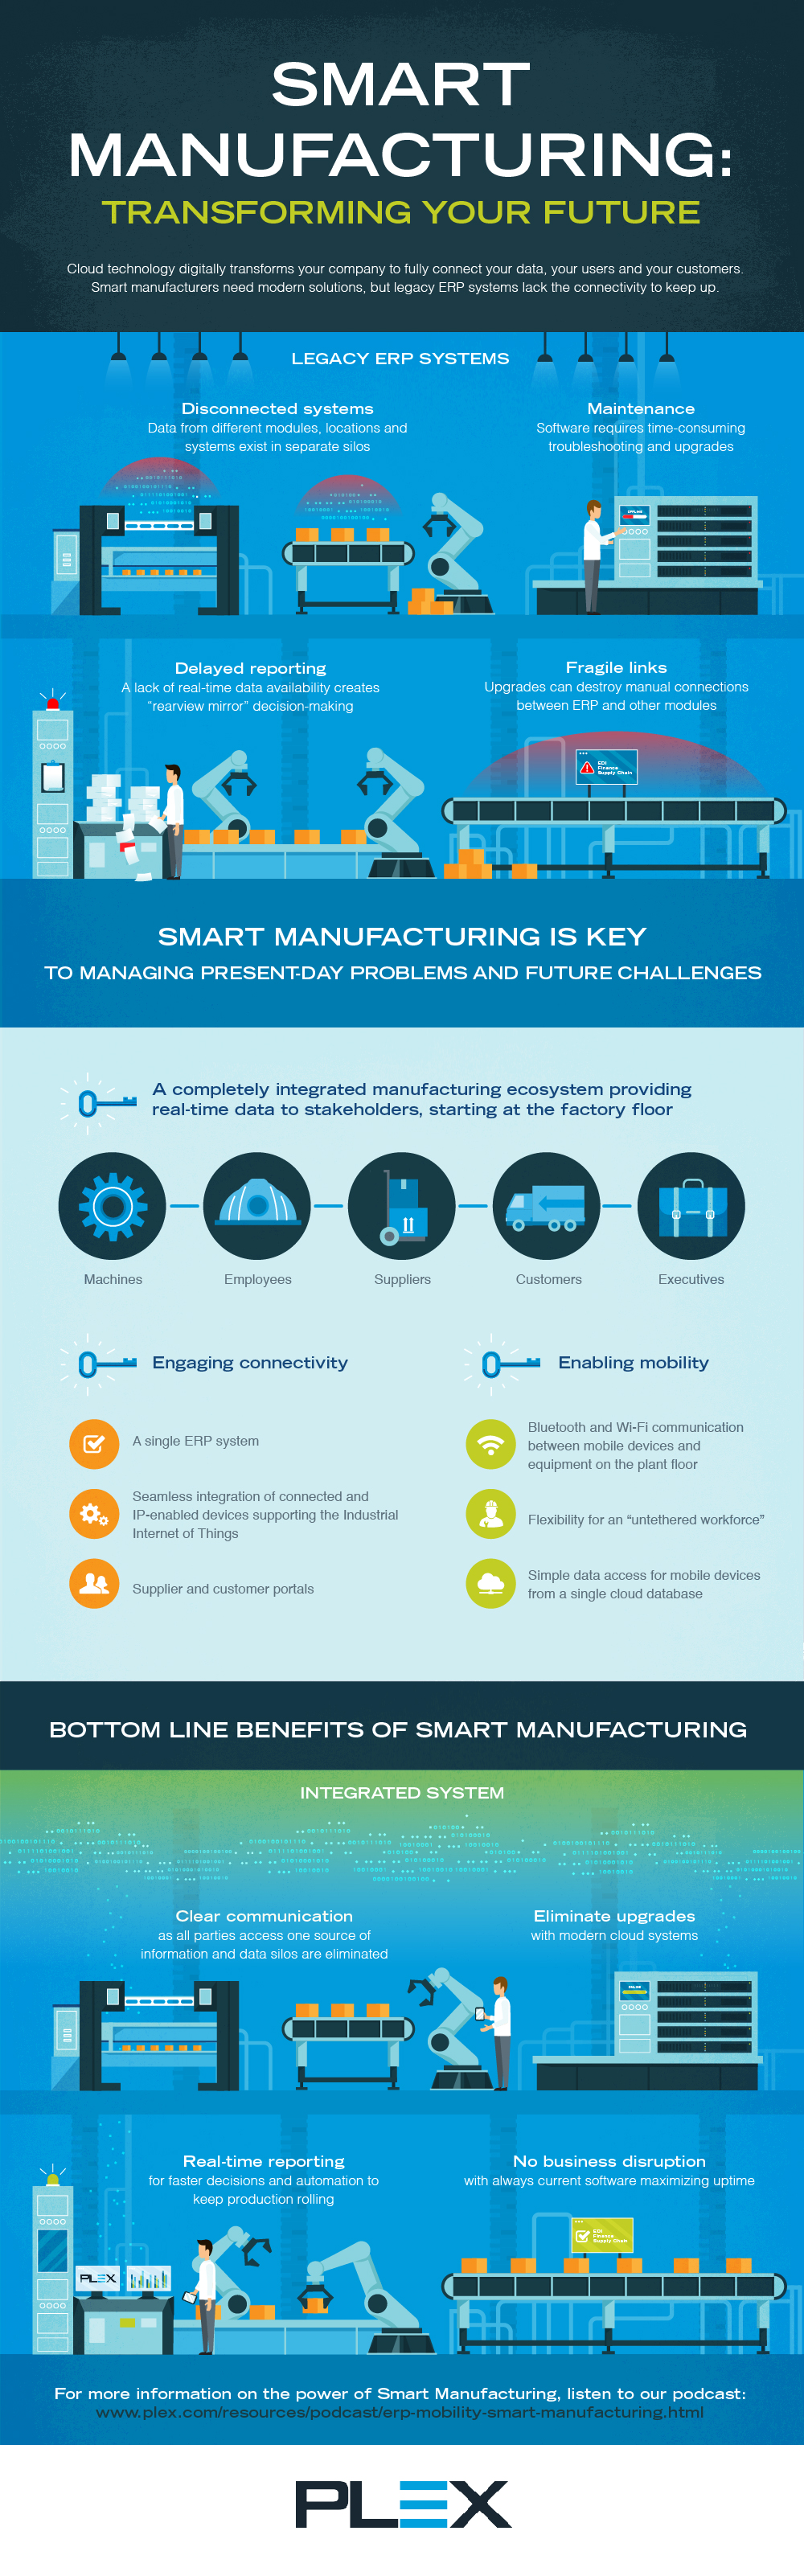 Smart Manufacturing: Transforming Your Future